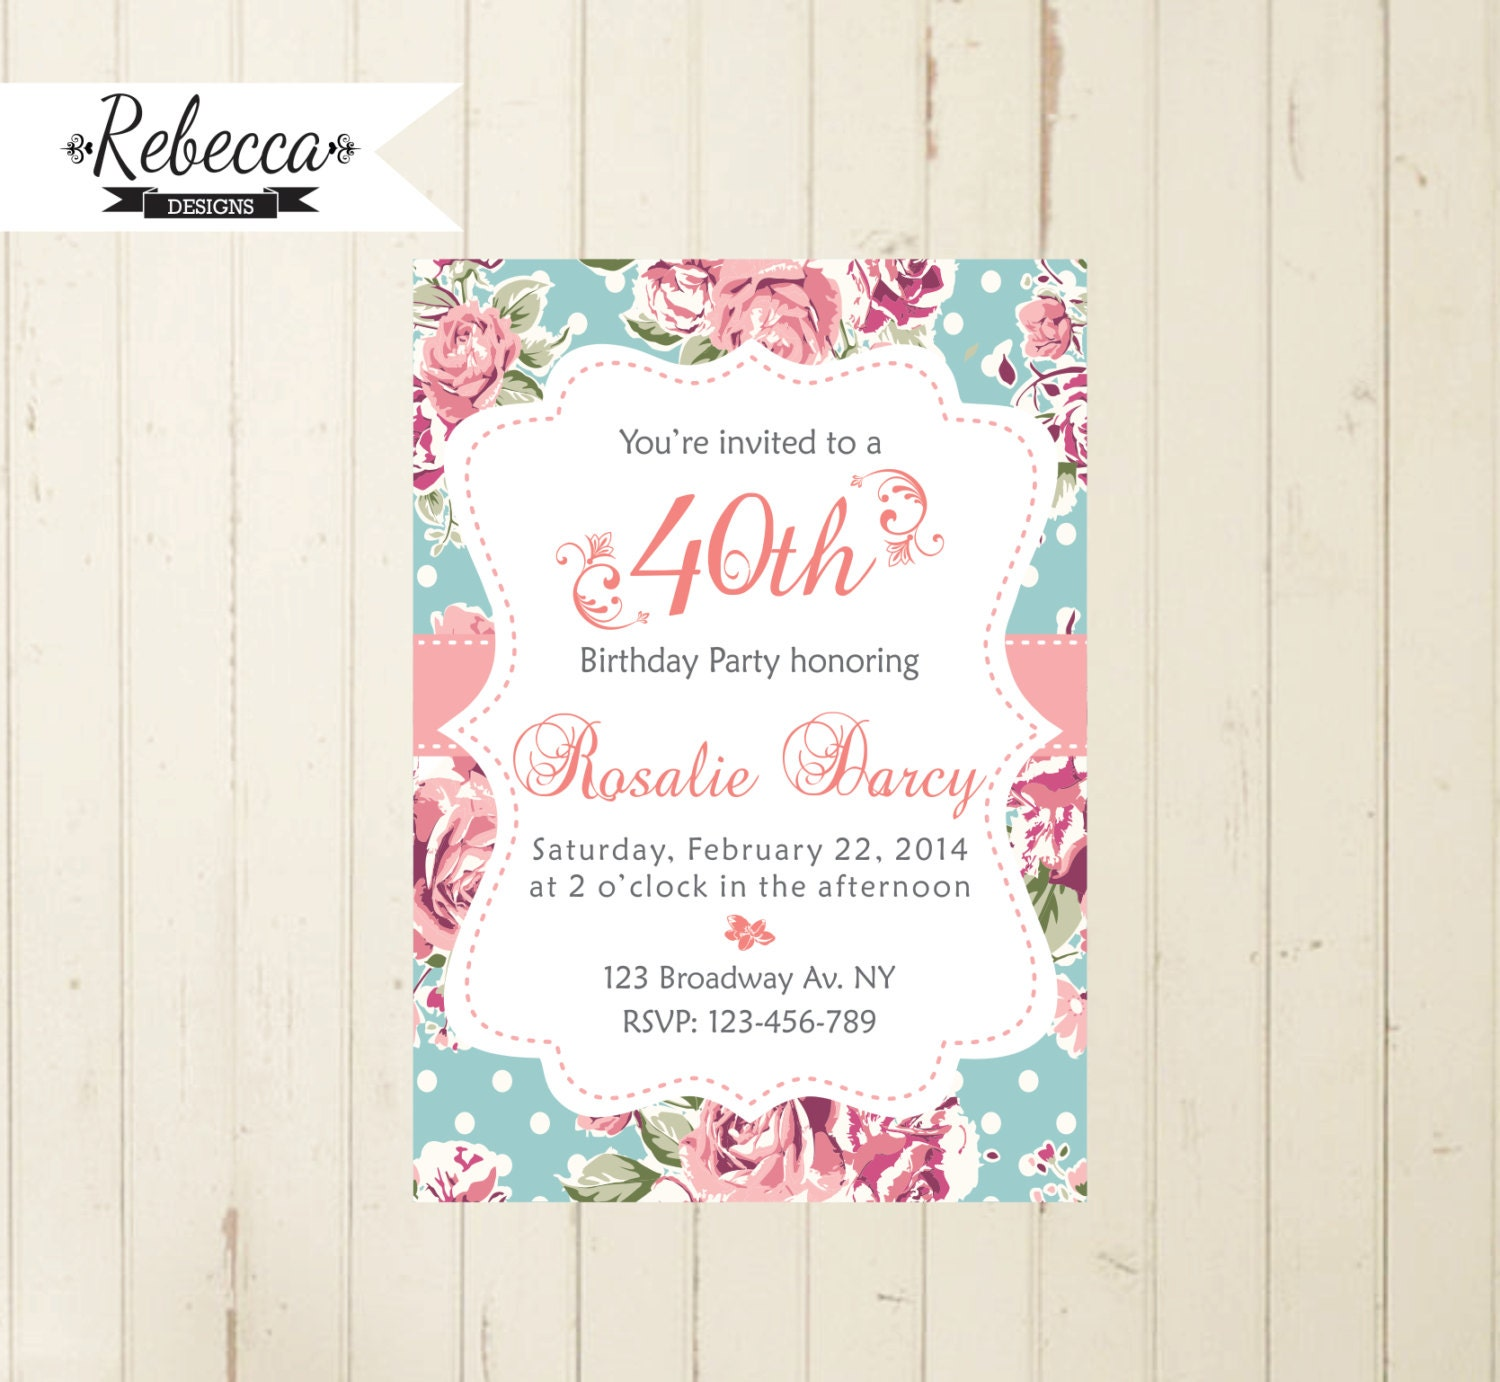 Floral birthday invitation cottage chic party tea party